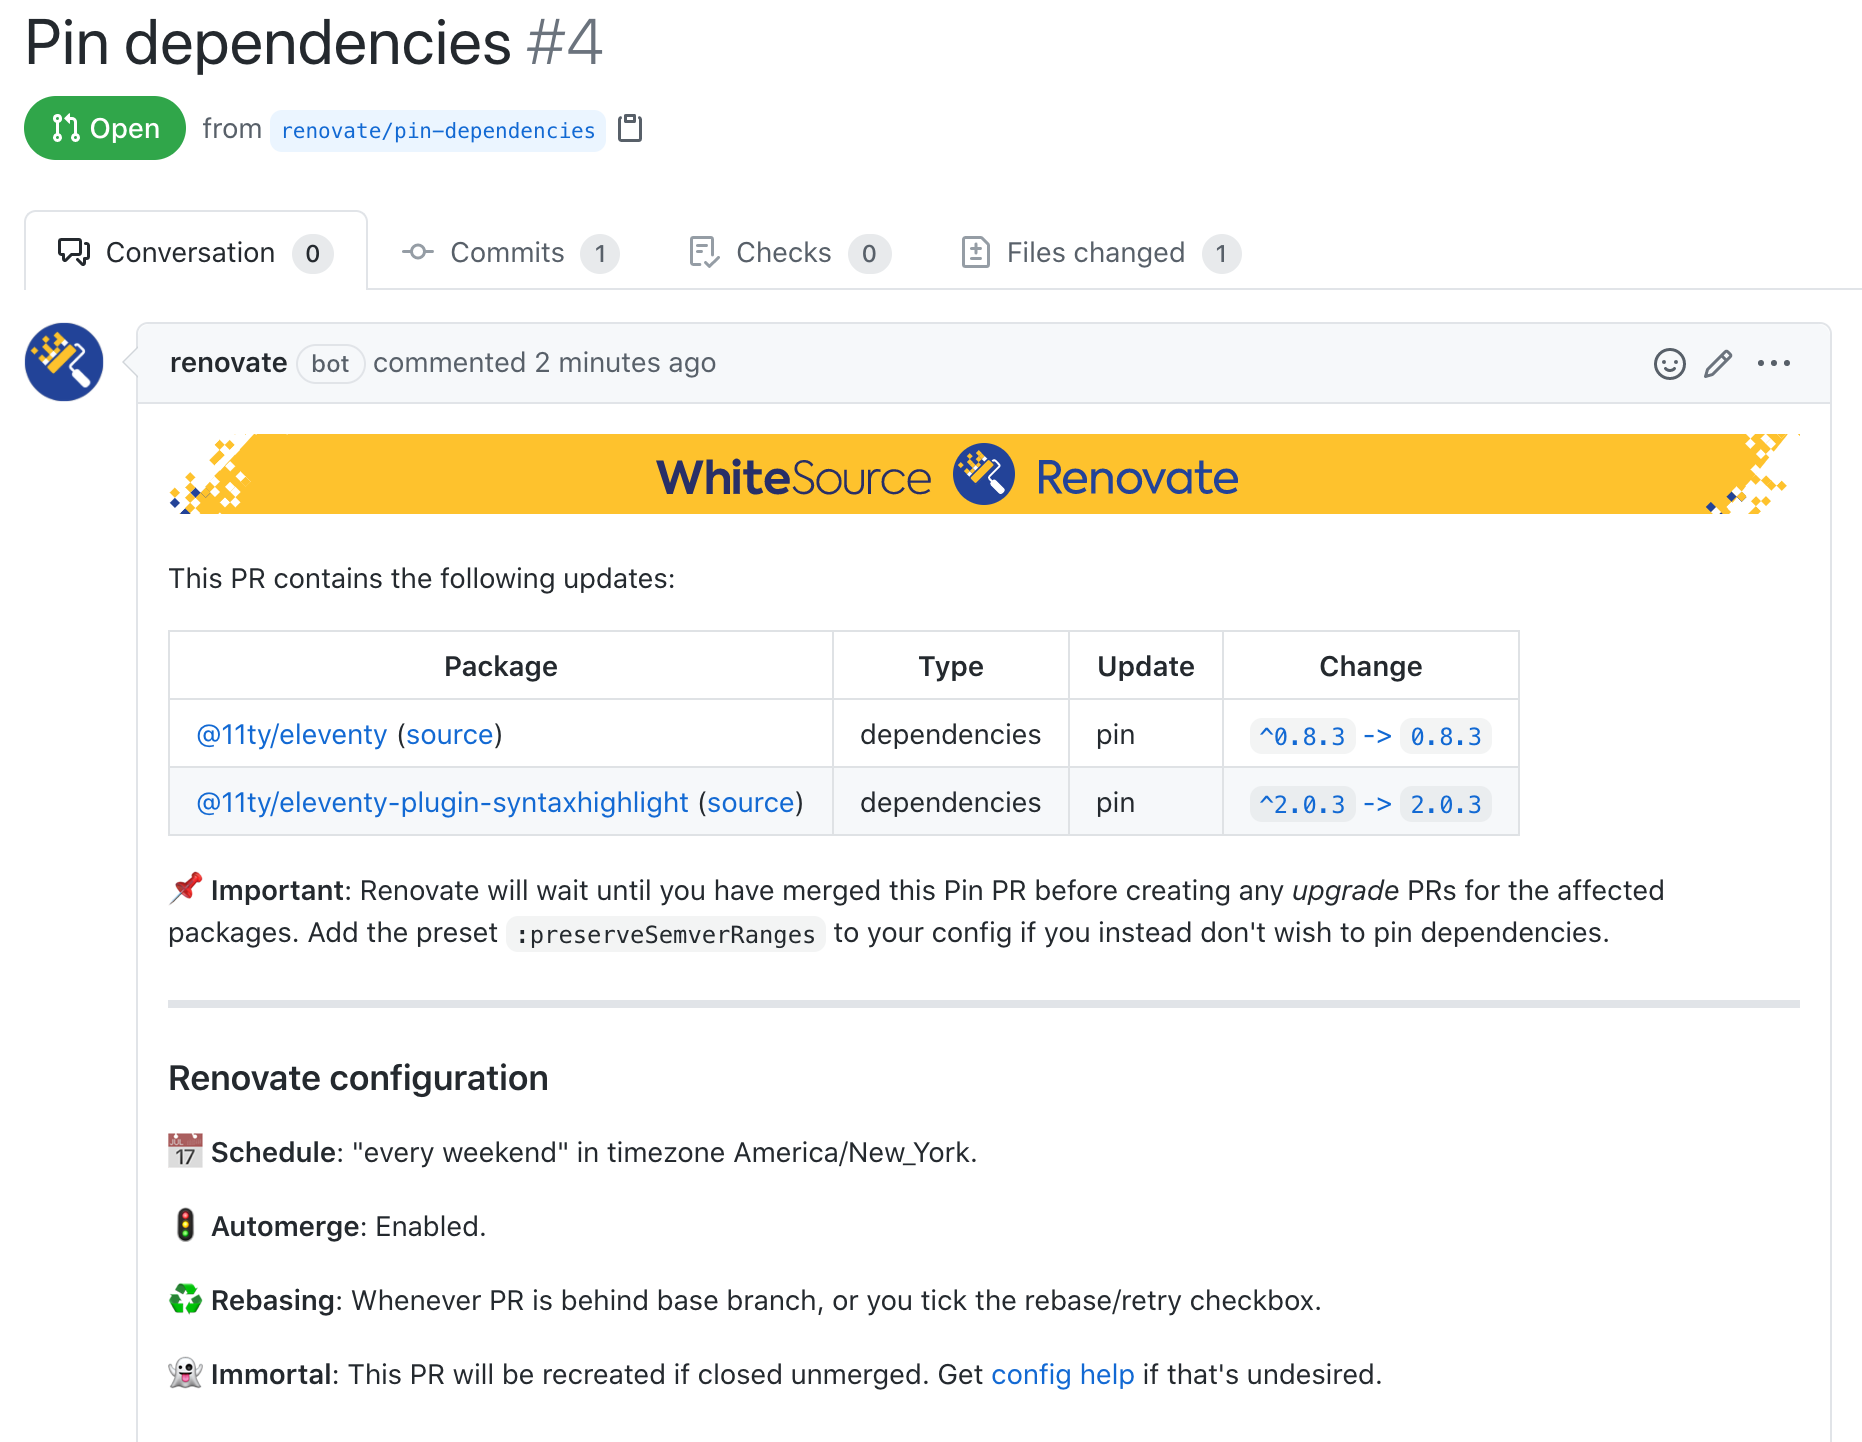 RenovateApp opens a pull request to pin dependencies